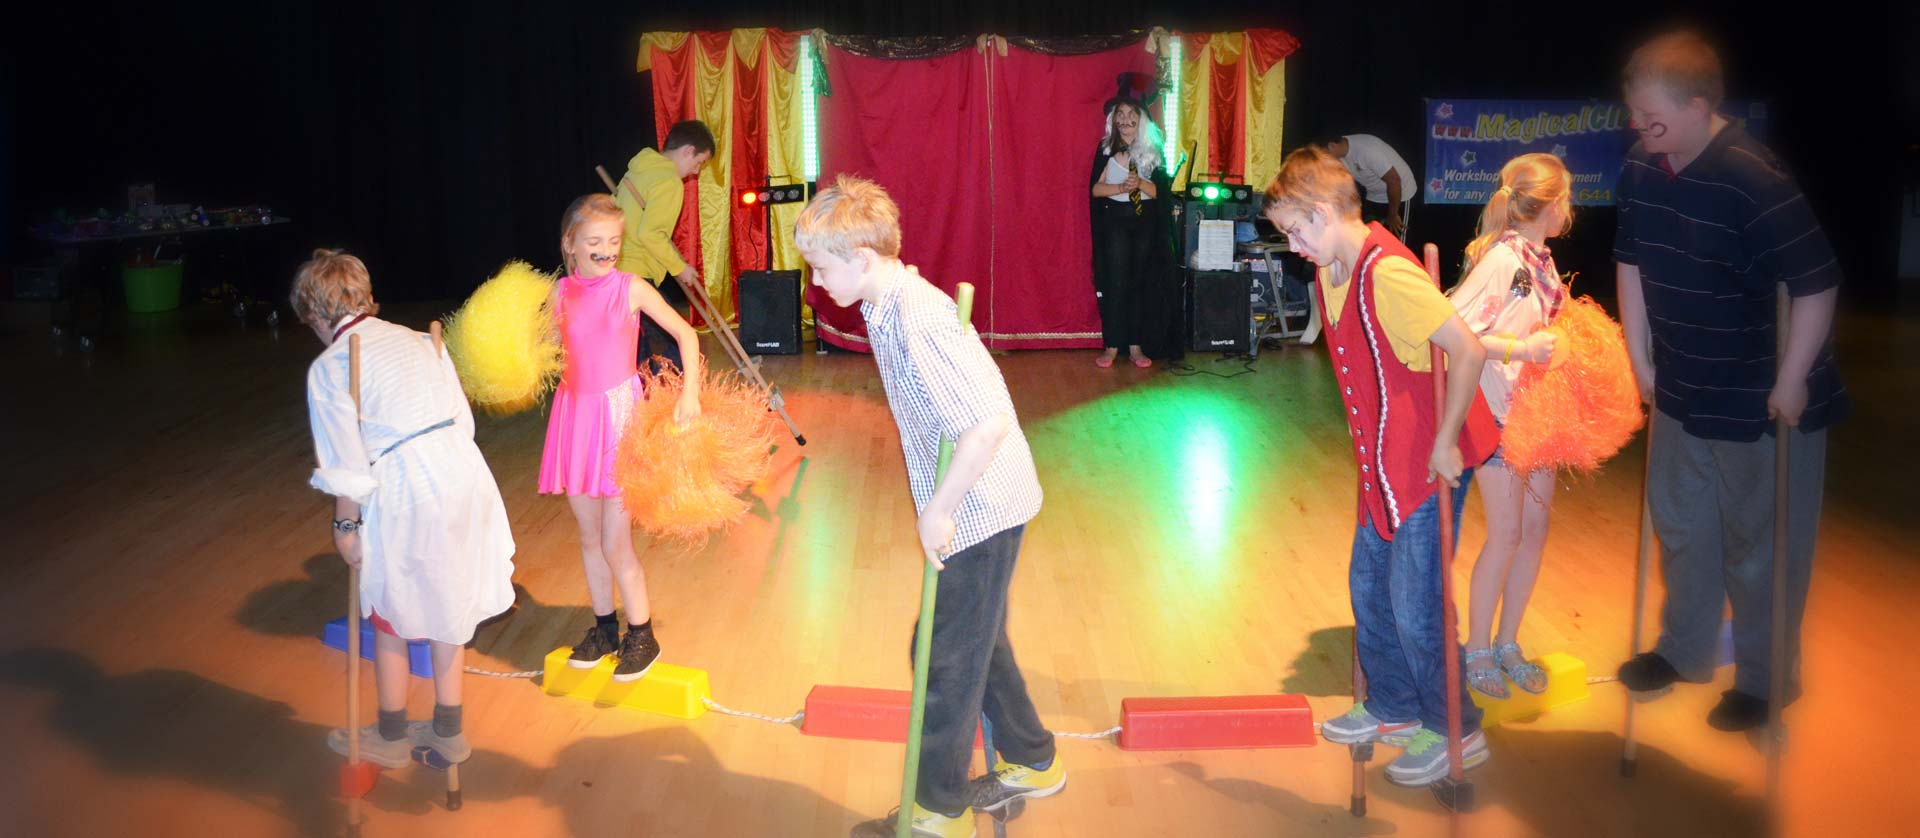 Magical Circus workshops for schools.